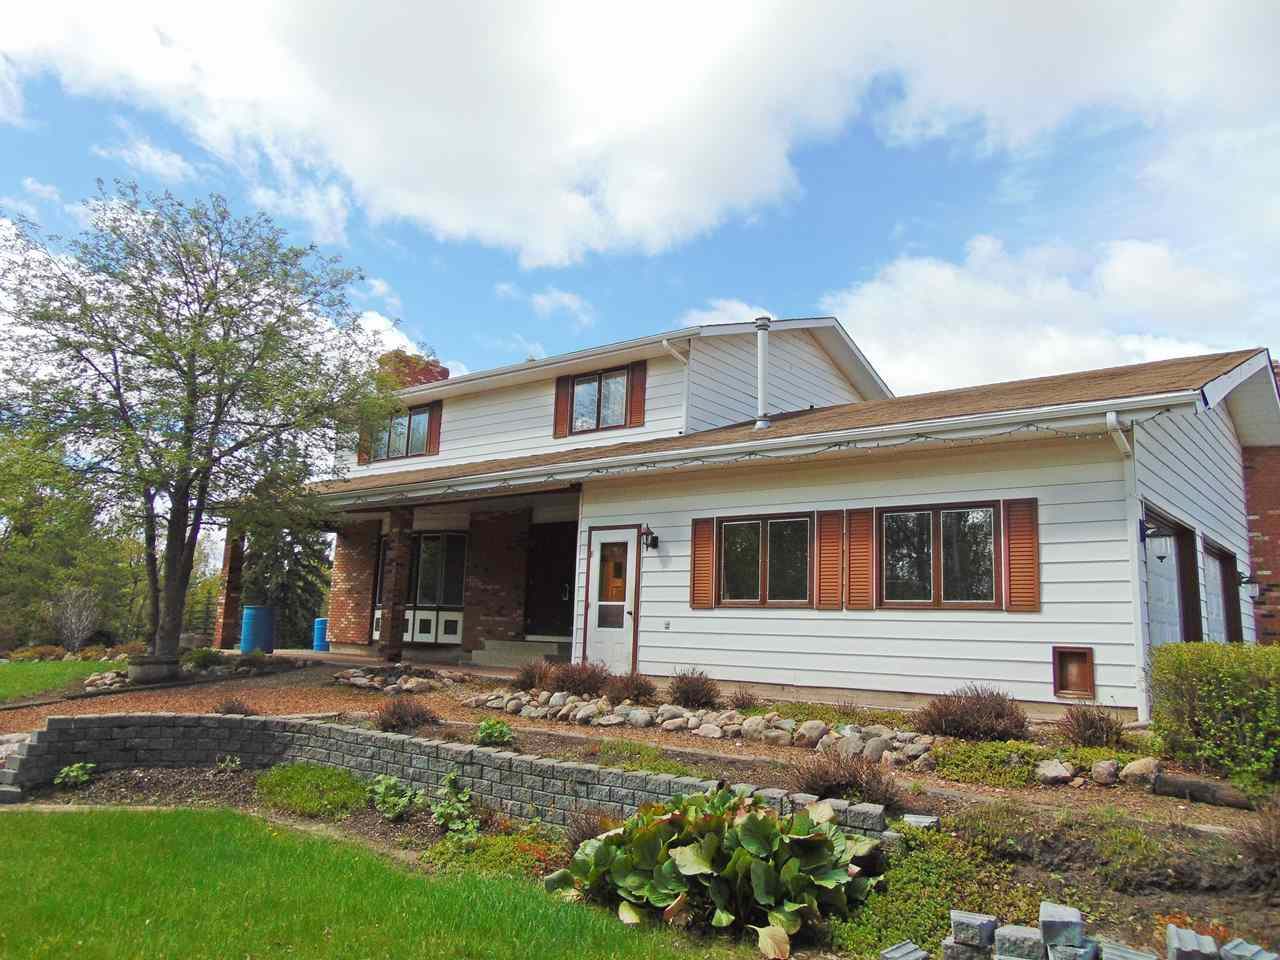 Main Photo: 57130 Rg Rd 230: Rural Sturgeon County House for sale : MLS(r) # E4064722